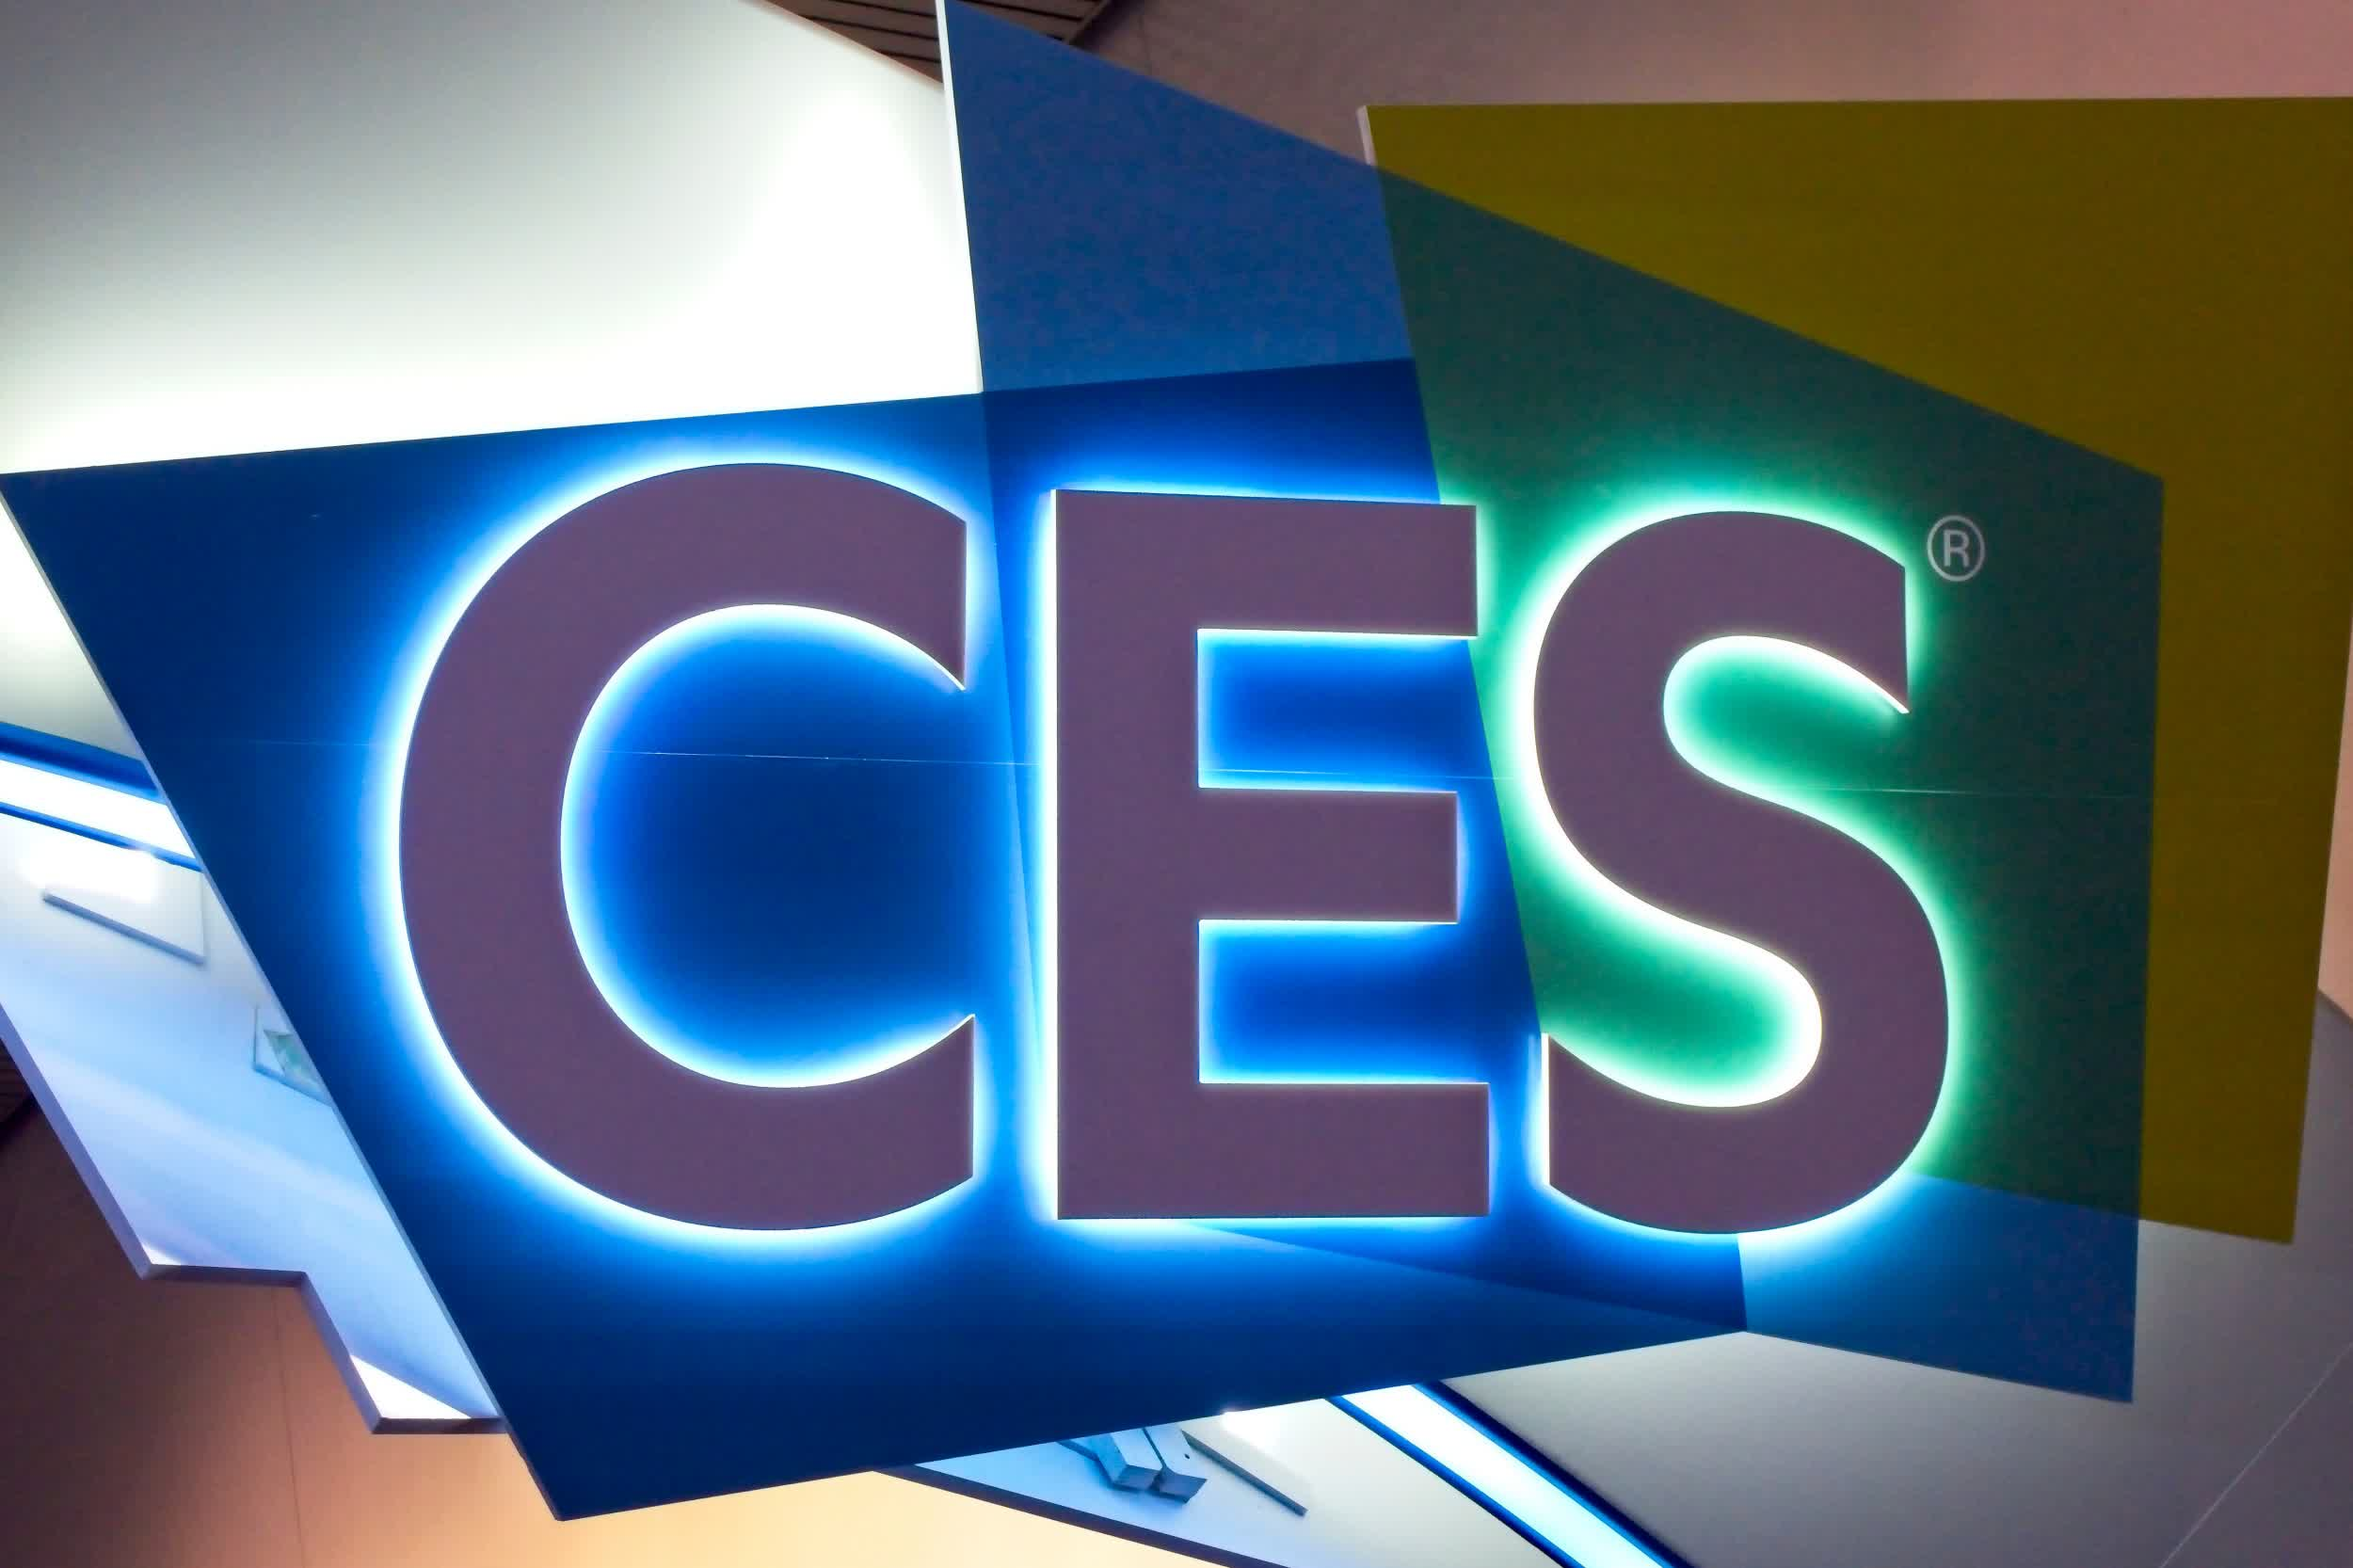 CES will return to Las Vegas with an in-person element in 2022